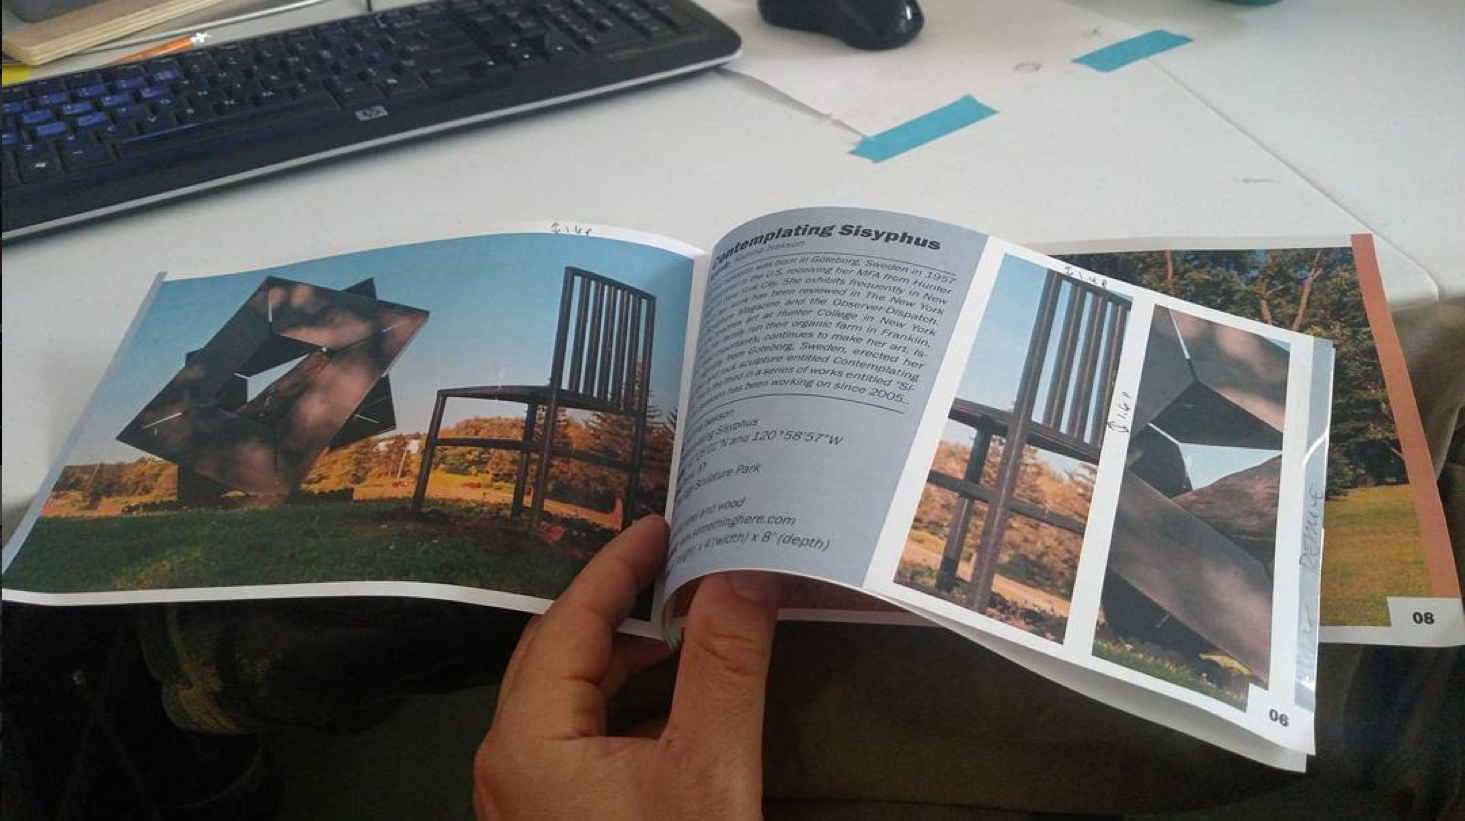 a mockup of the ArtOneida commemorative book, showing 2 pages side to side